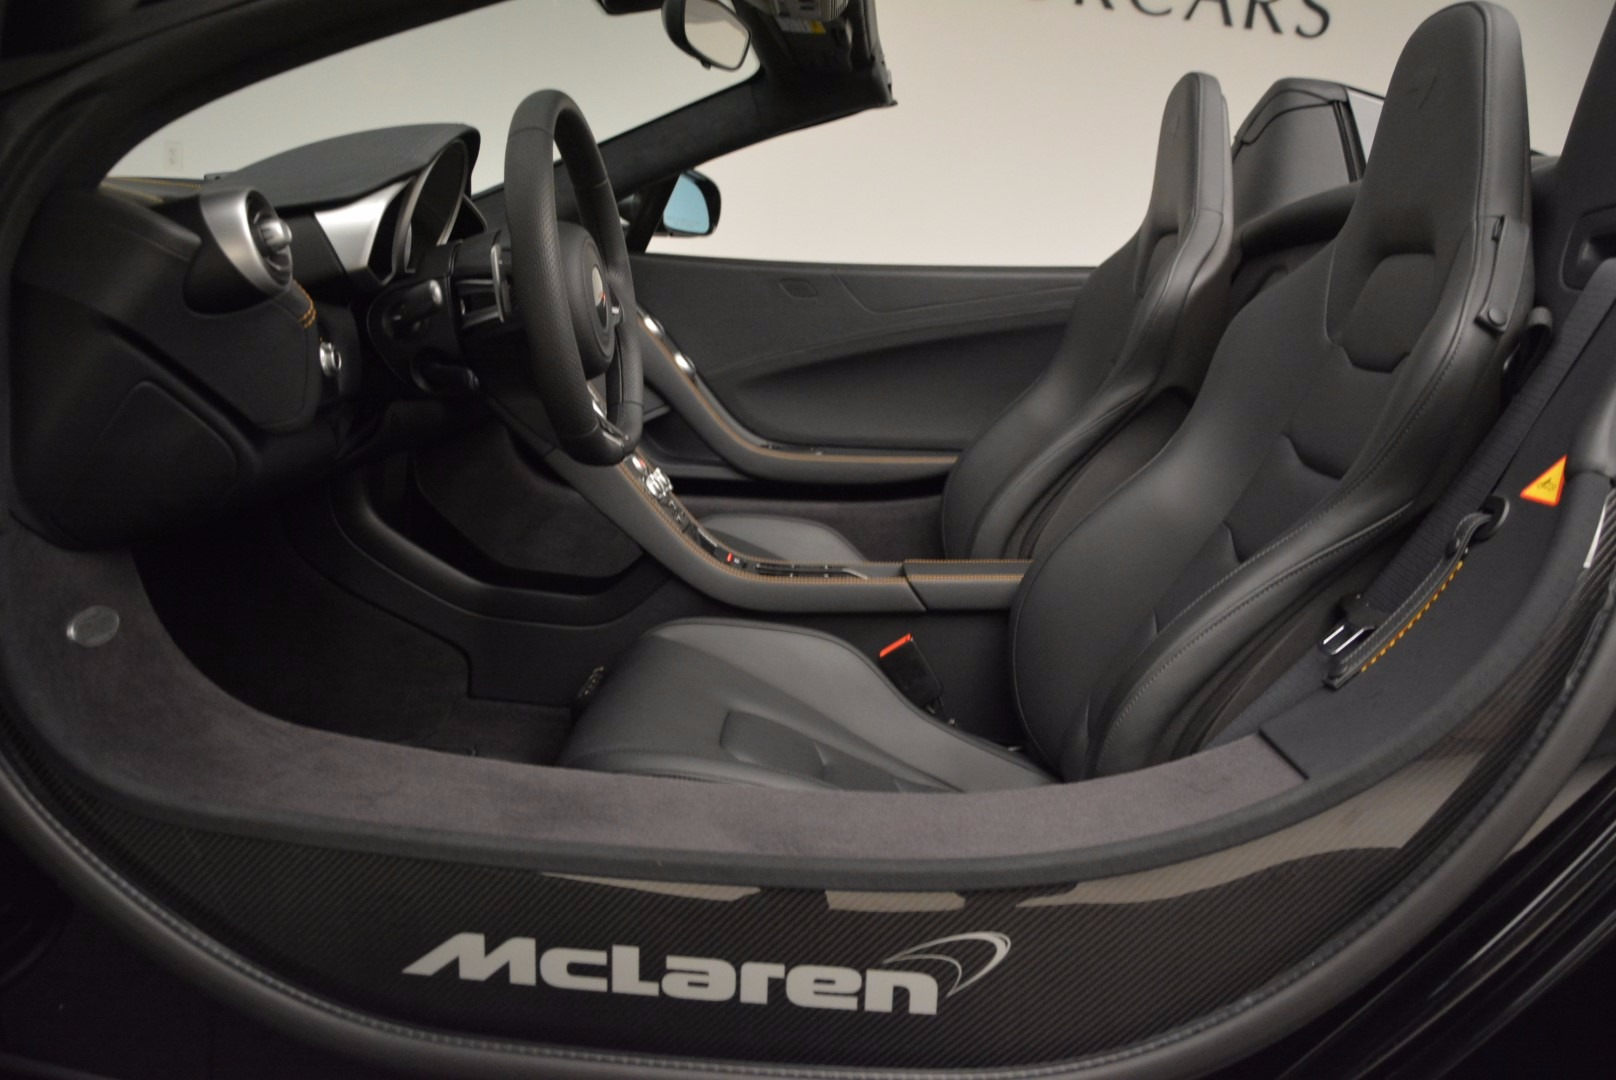 Used 2013 McLaren 12C Spider  For Sale In Greenwich, CT. Alfa Romeo of Greenwich, 3093 973_p25